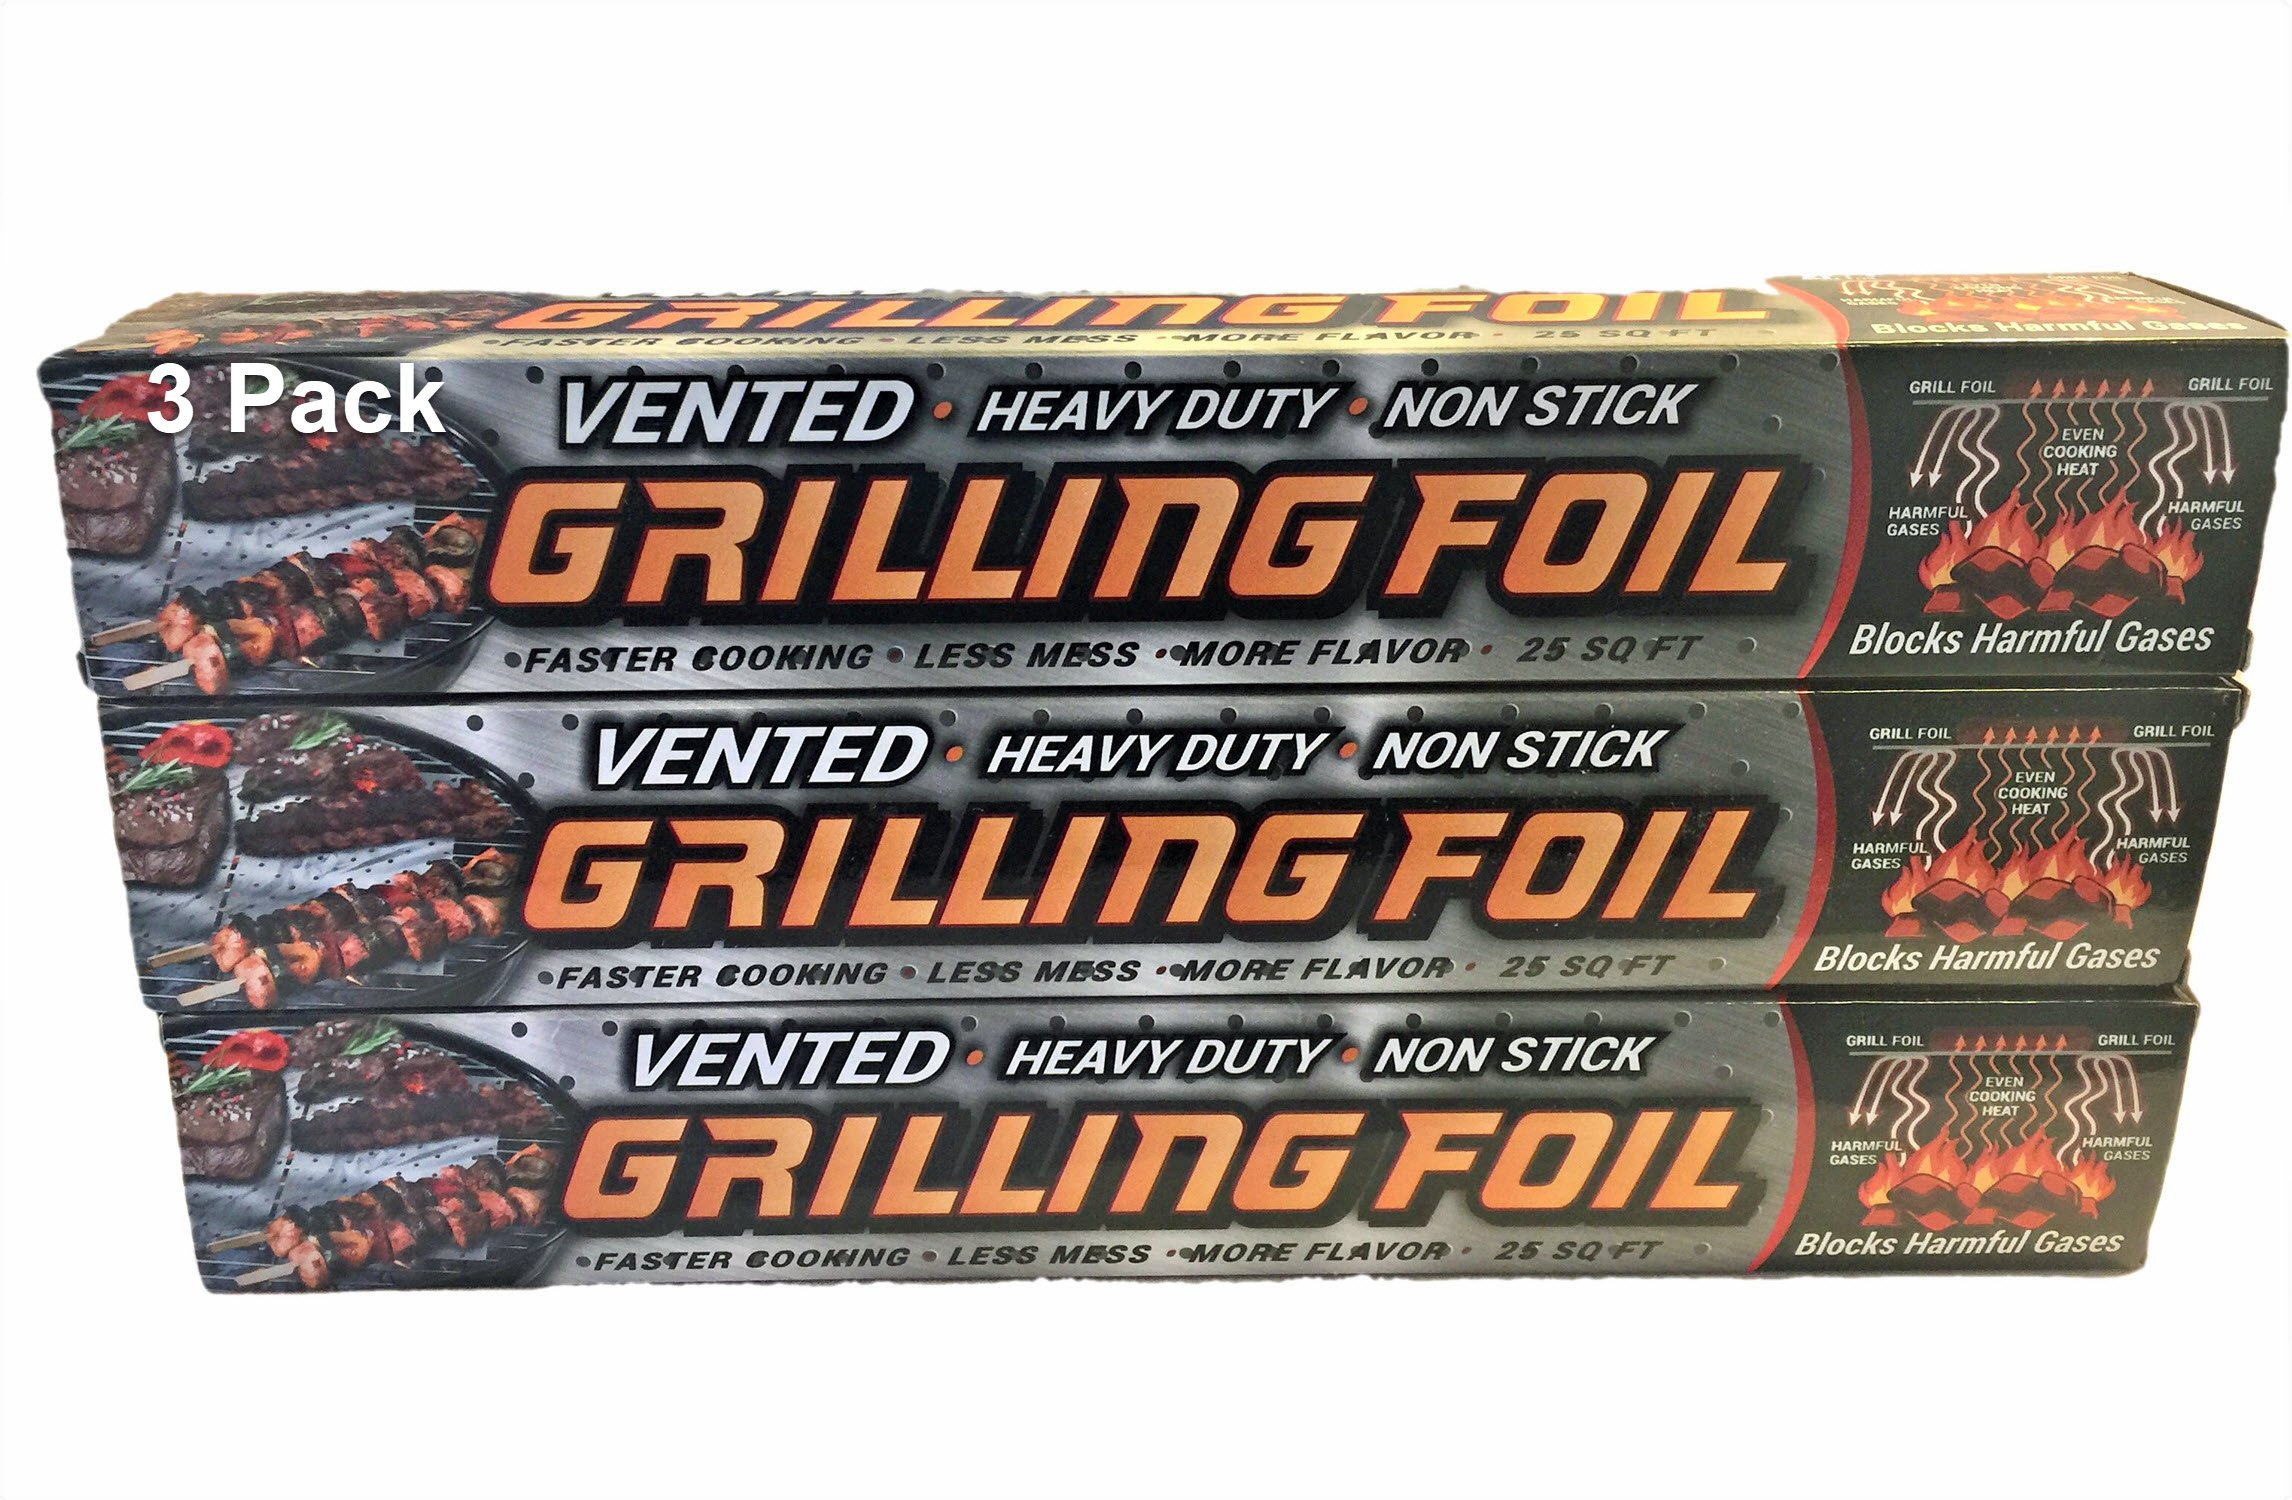 Grilling Foil - Barbecue Accessory Vented with Holes Specifically for Grilling and Steaming, Non-stick Aluminum Tin Foil, 3 PK â 12'' x 25 Sq Ft. Rolls, Faster Cooking, Less Mess.